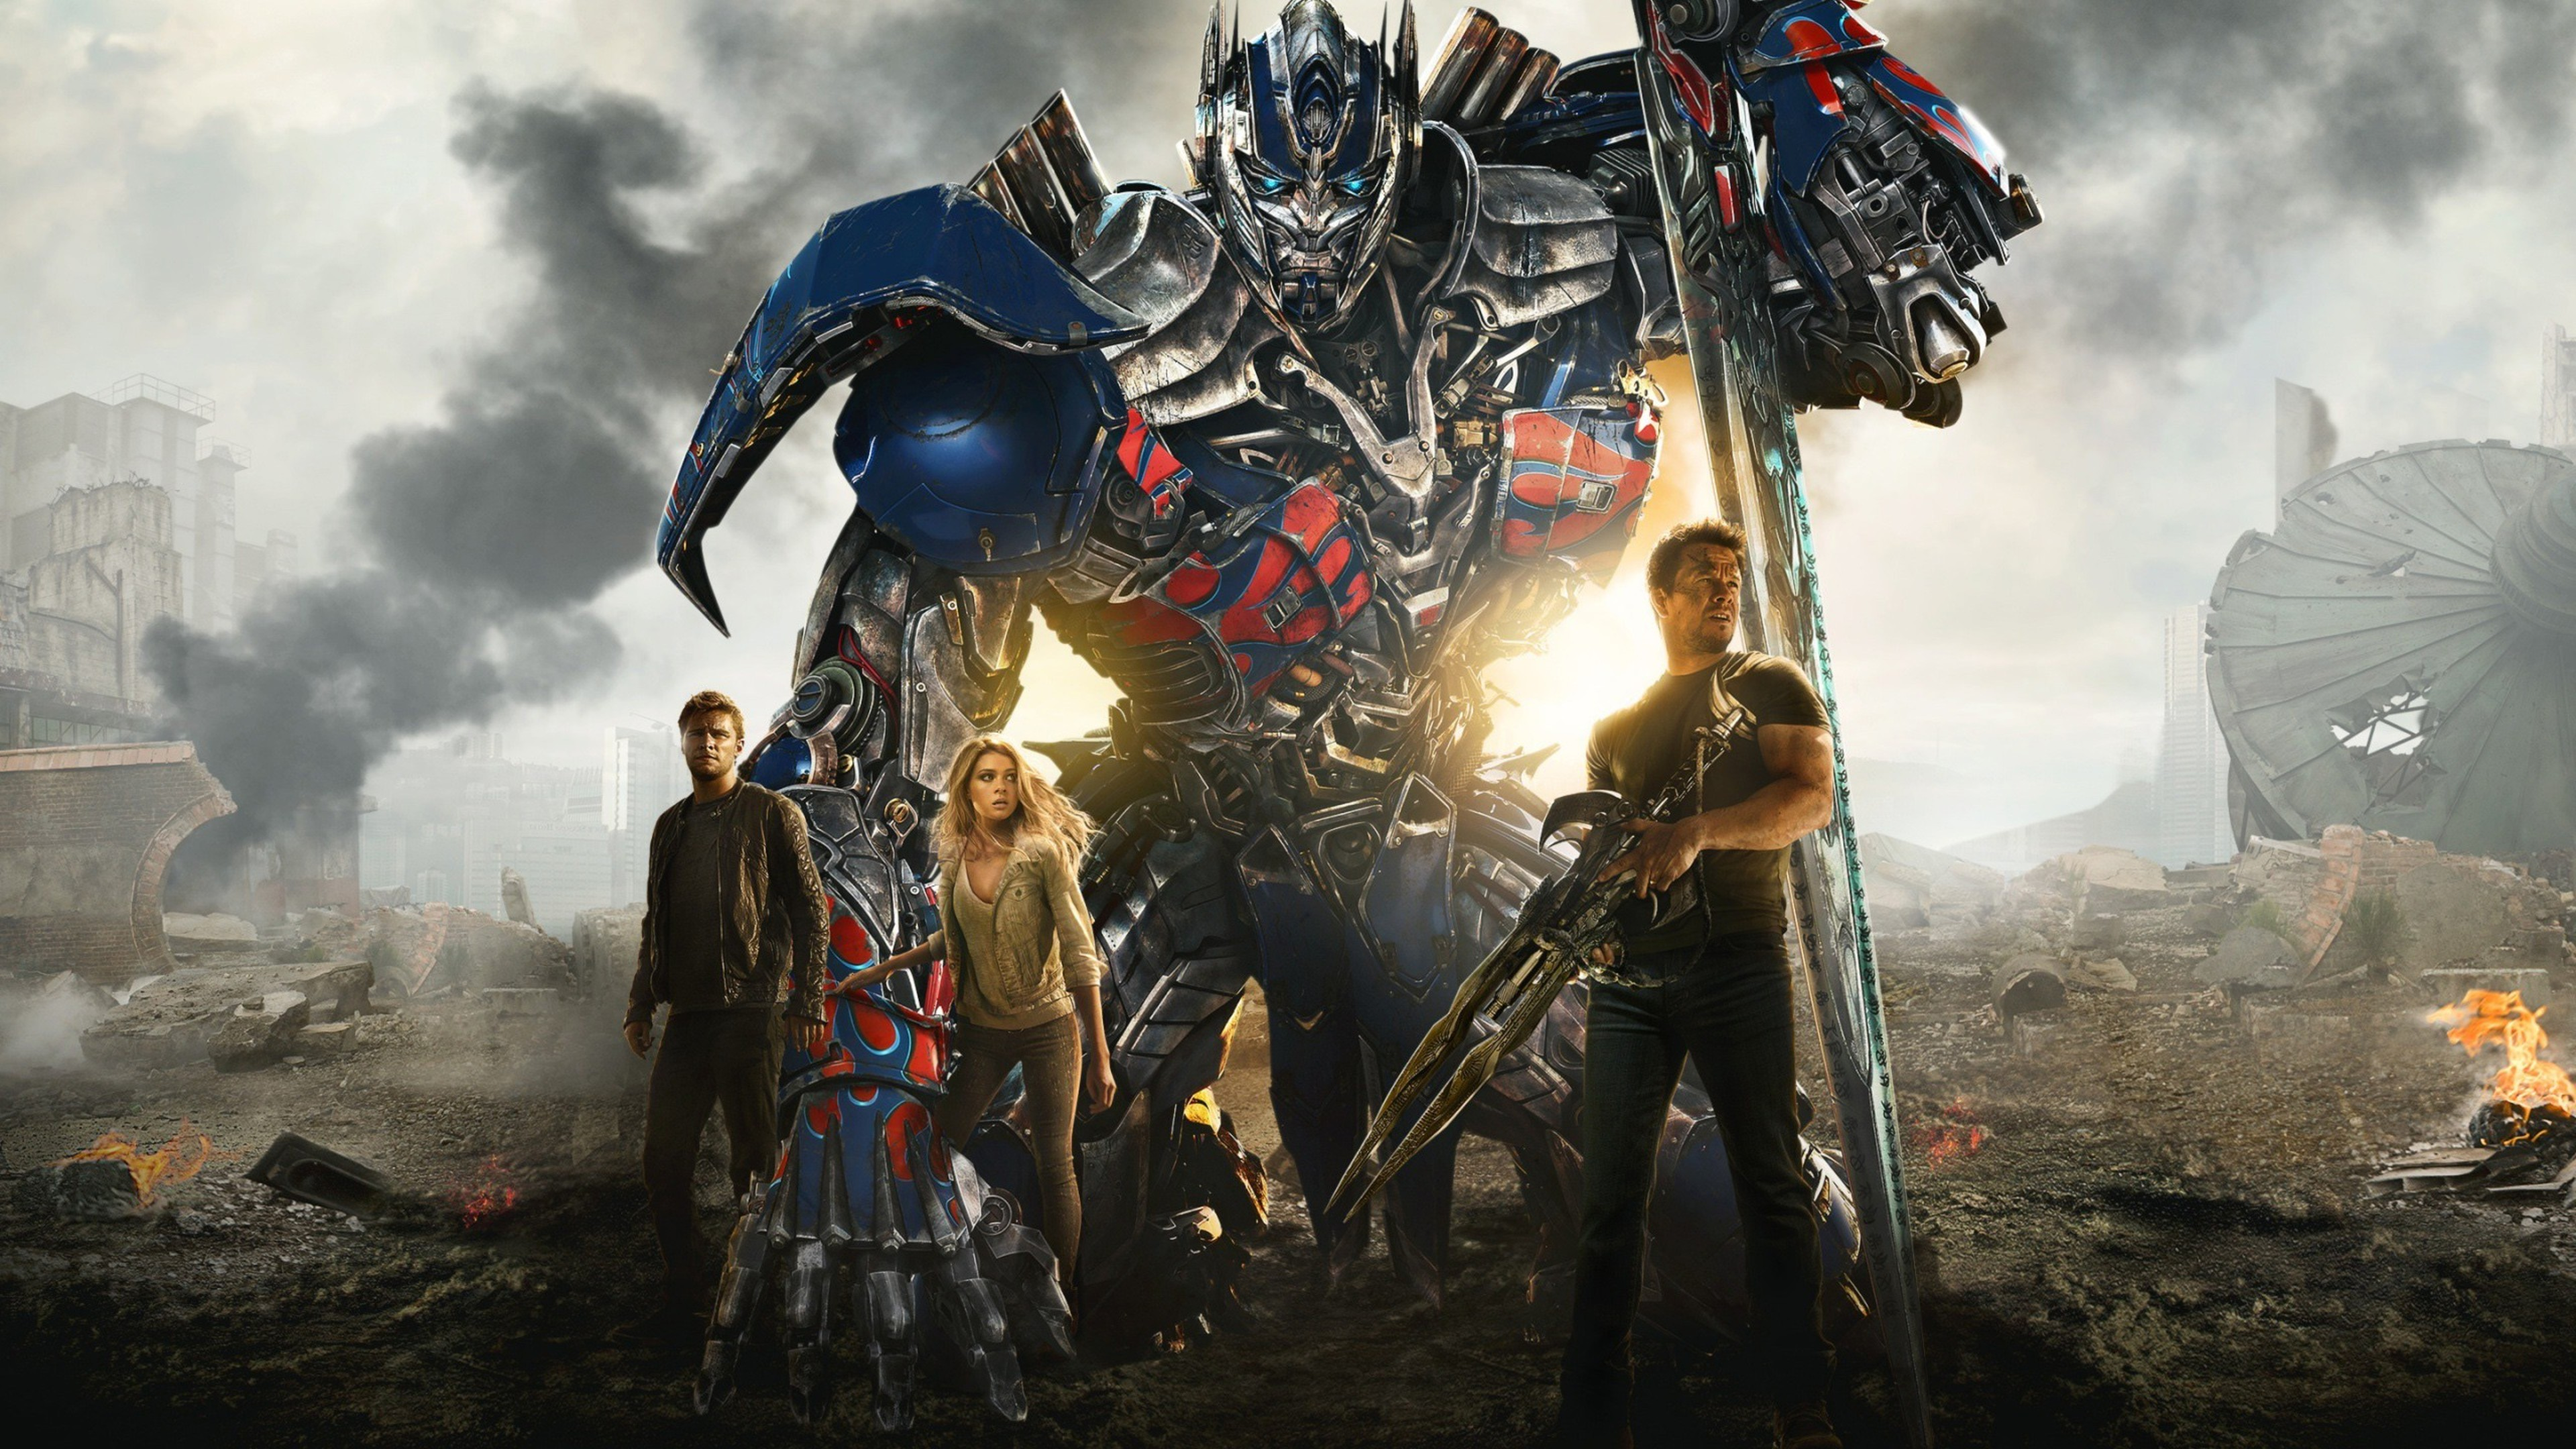 Good Wallpaper Movie Laptop - transformers-4-age-of-extinction-movie  HD_23156.jpg